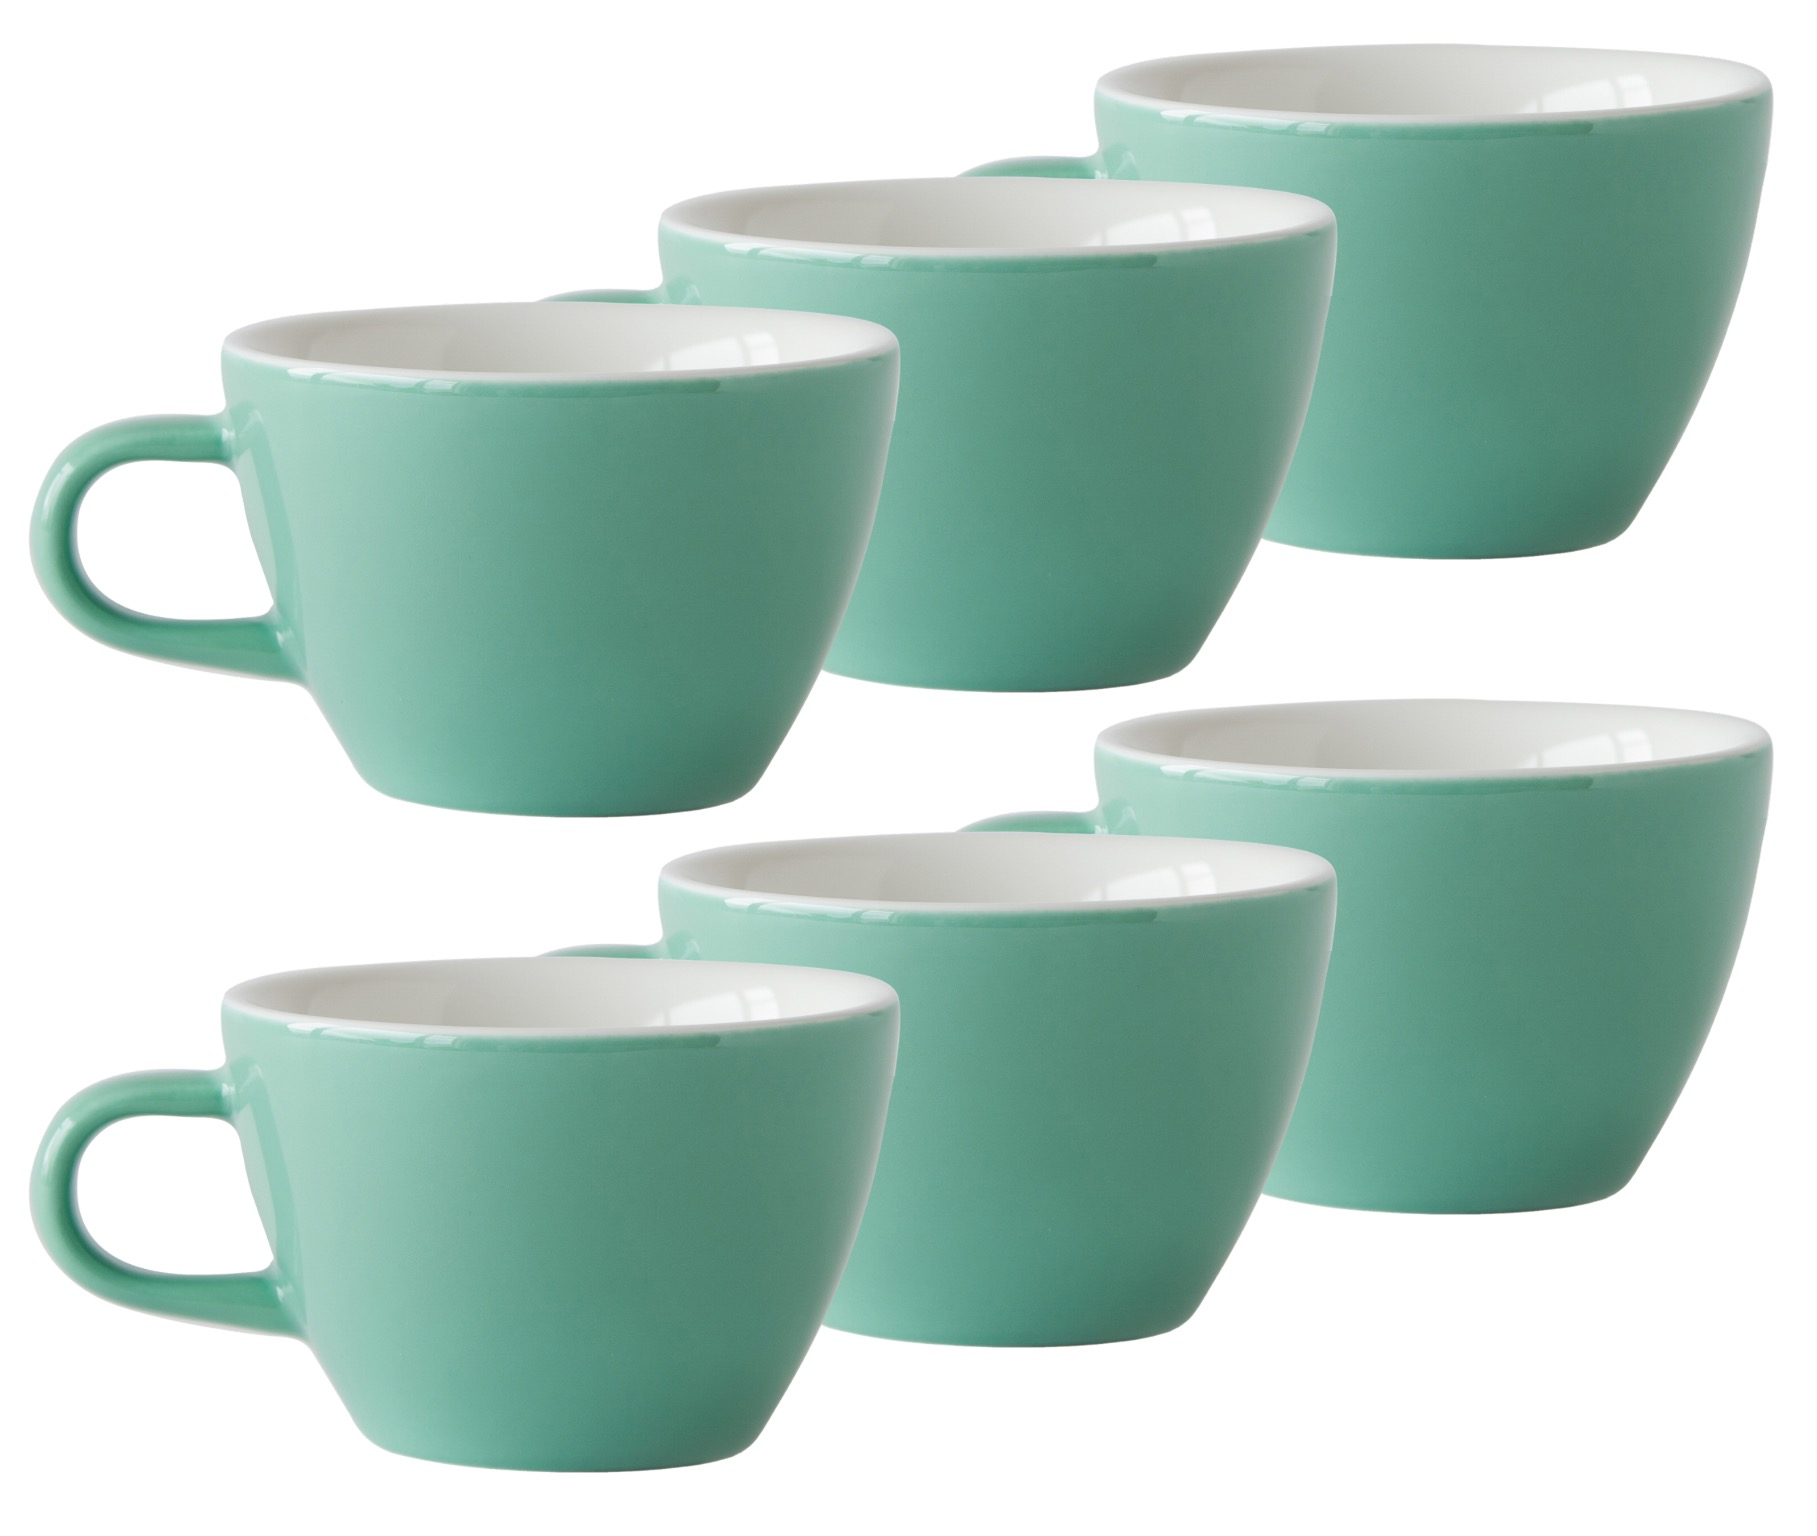 acme-evolution-flat-white-cups-set-of-6